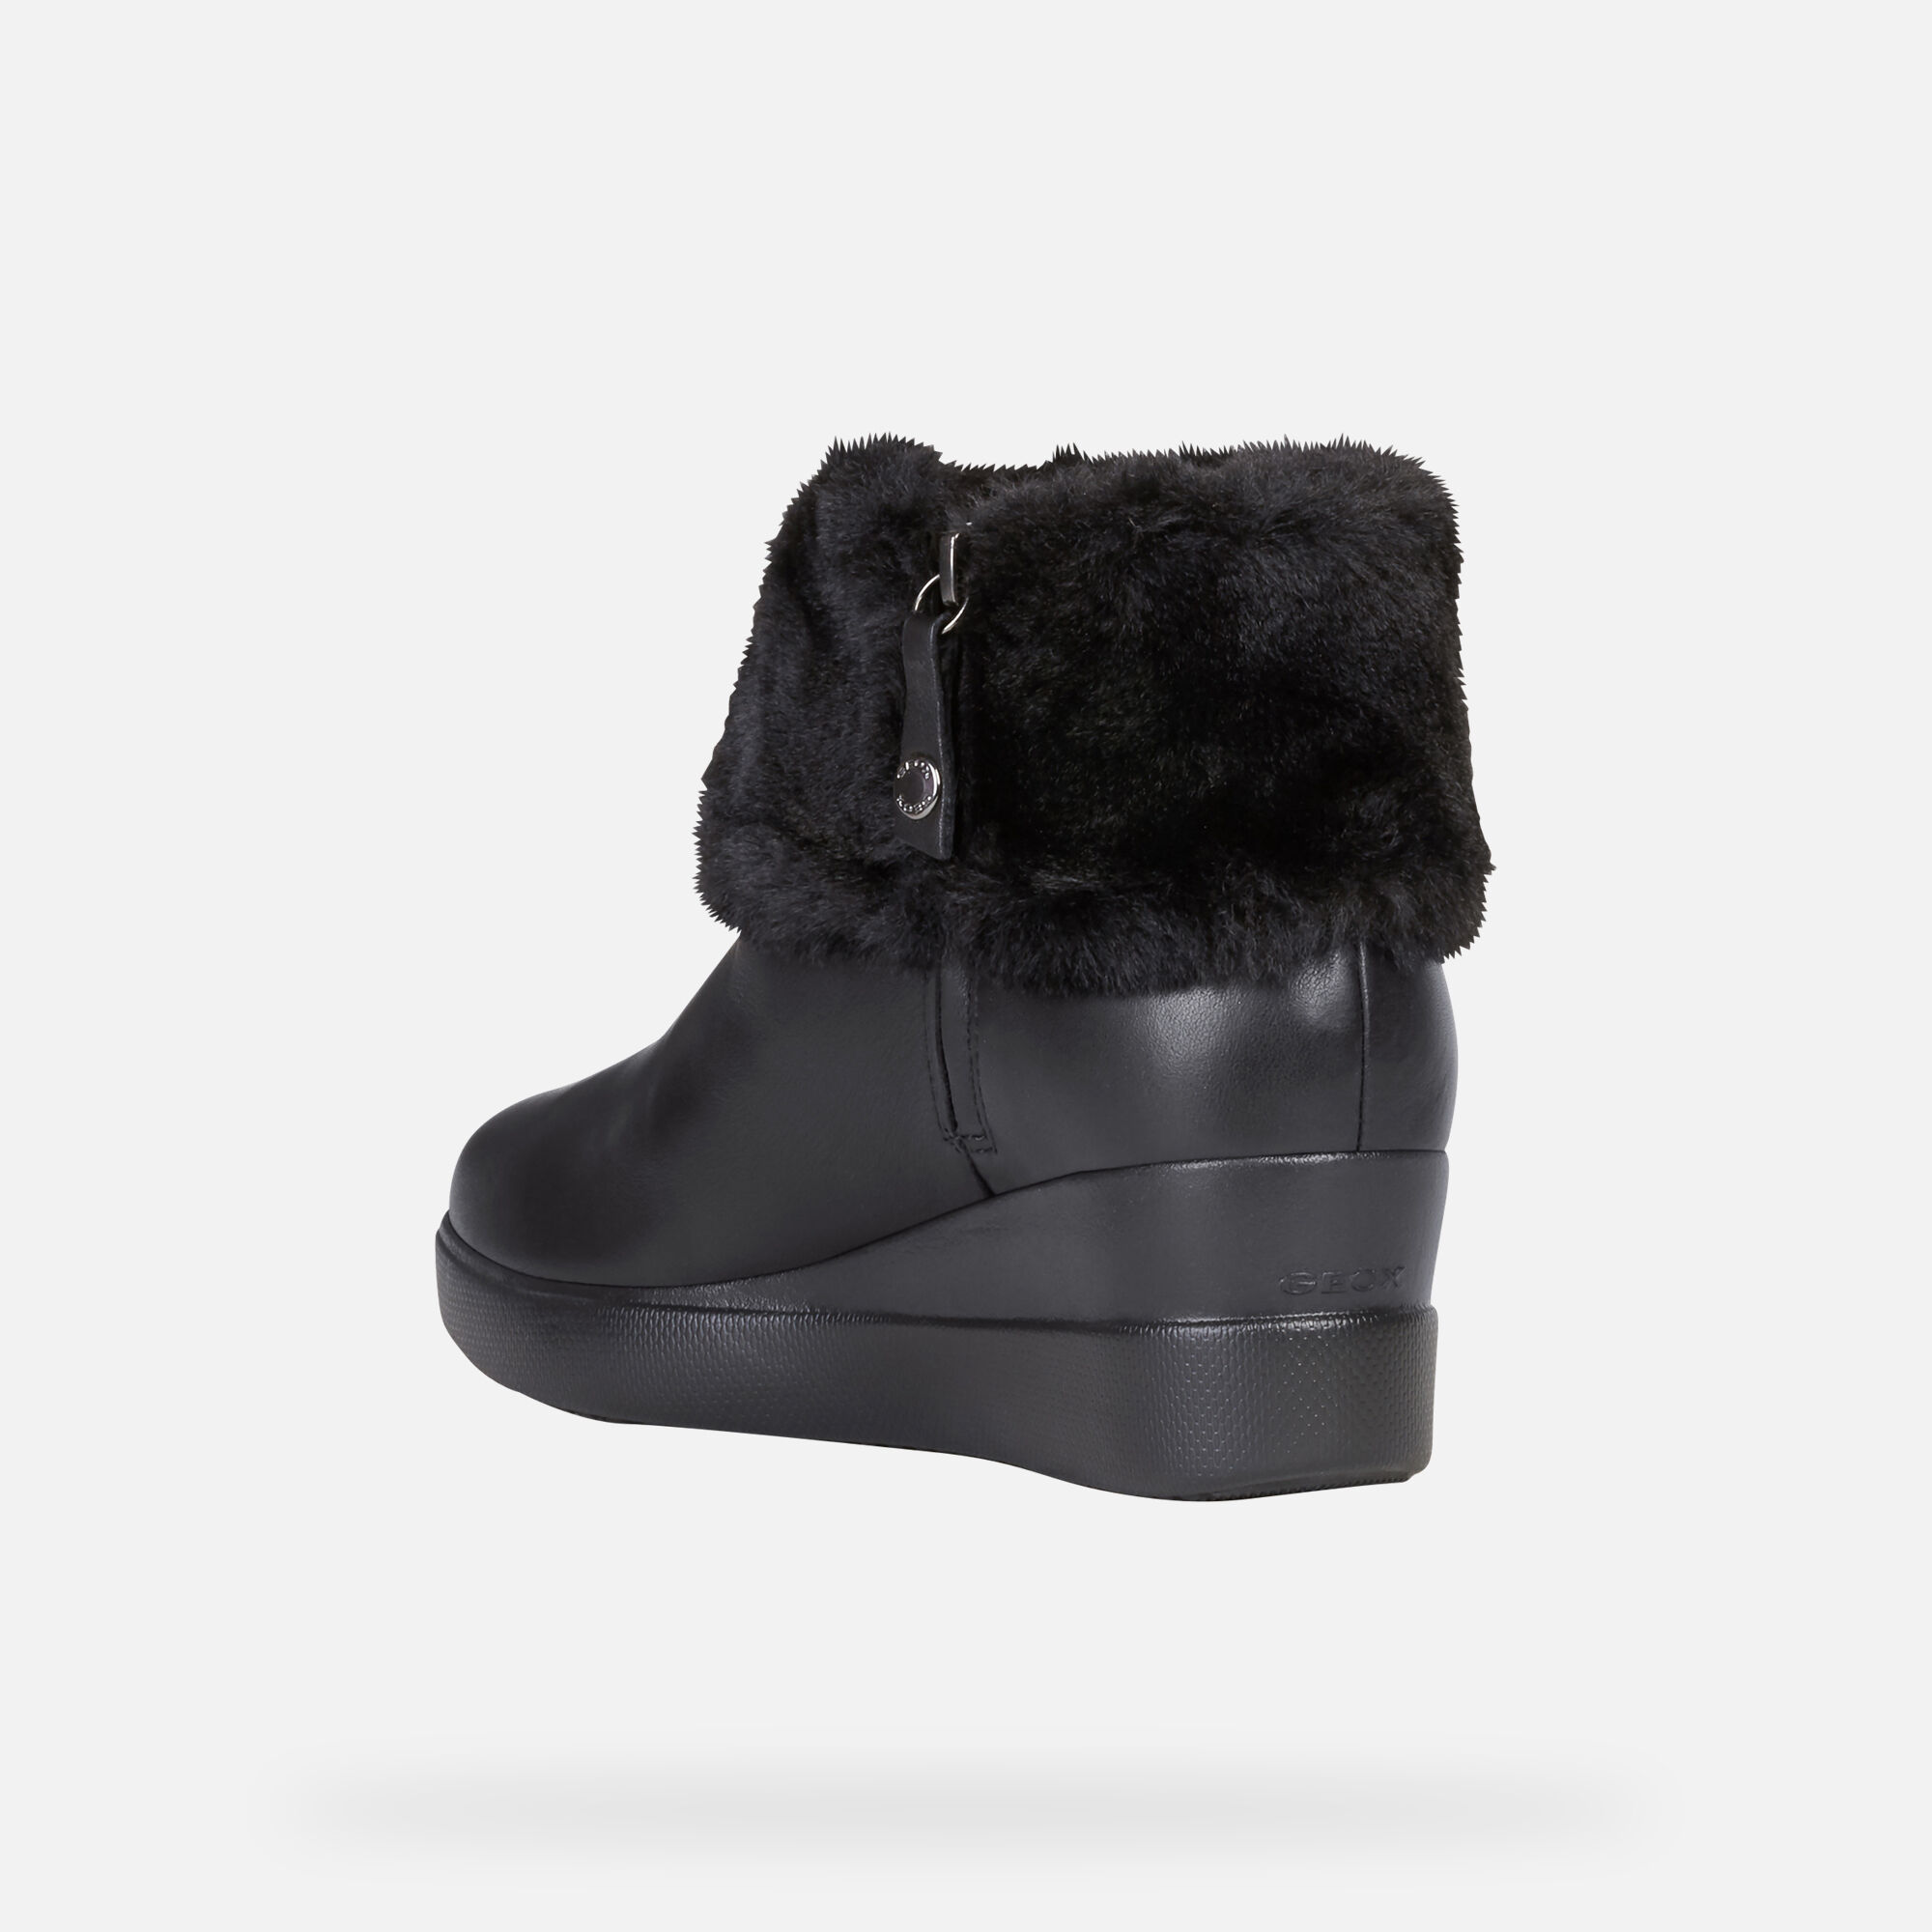 Geox STARDUST Woman: Black Ankle Boots   Geox ® Official Store